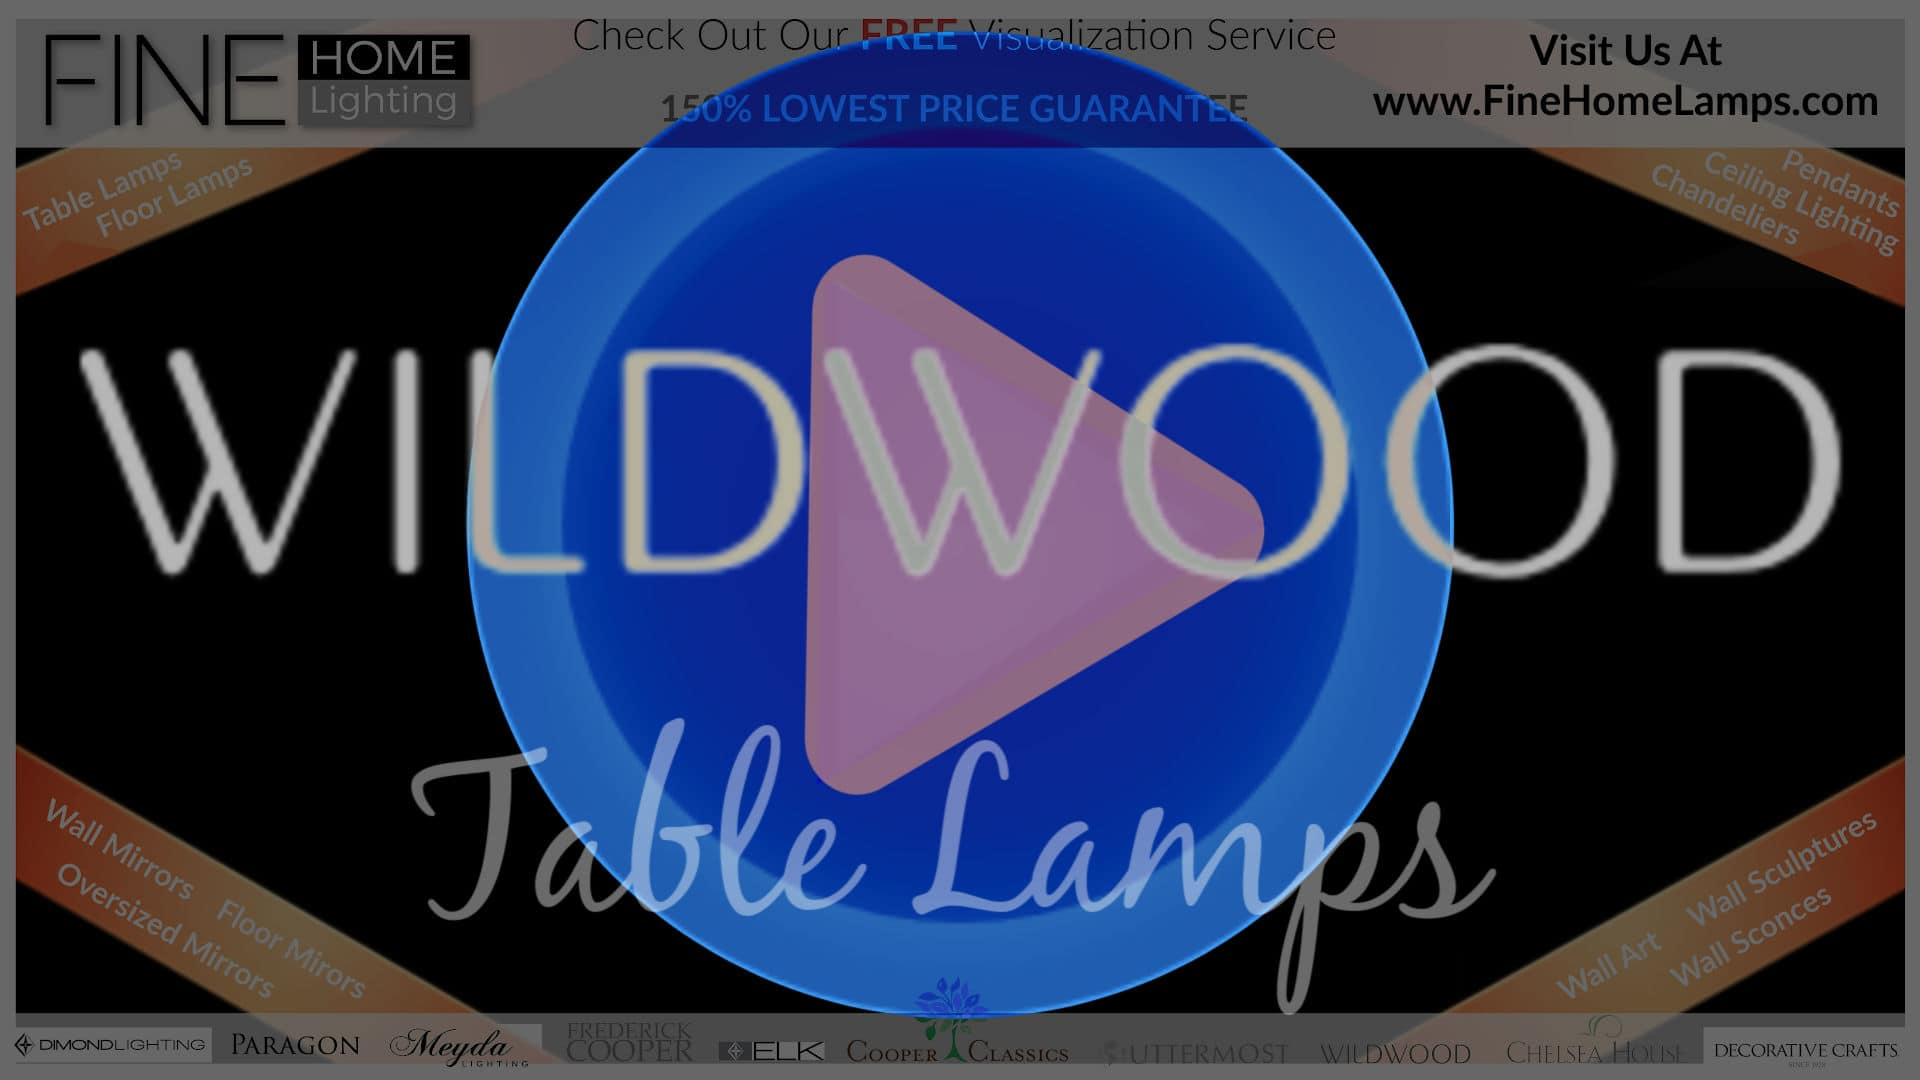 Wildwood-Table-Lamps-Thanks-for-watching-this-video-Get-an-additional-15-percent-off-your-next-purchase-Use-Coupon-Code-VIDEO-1